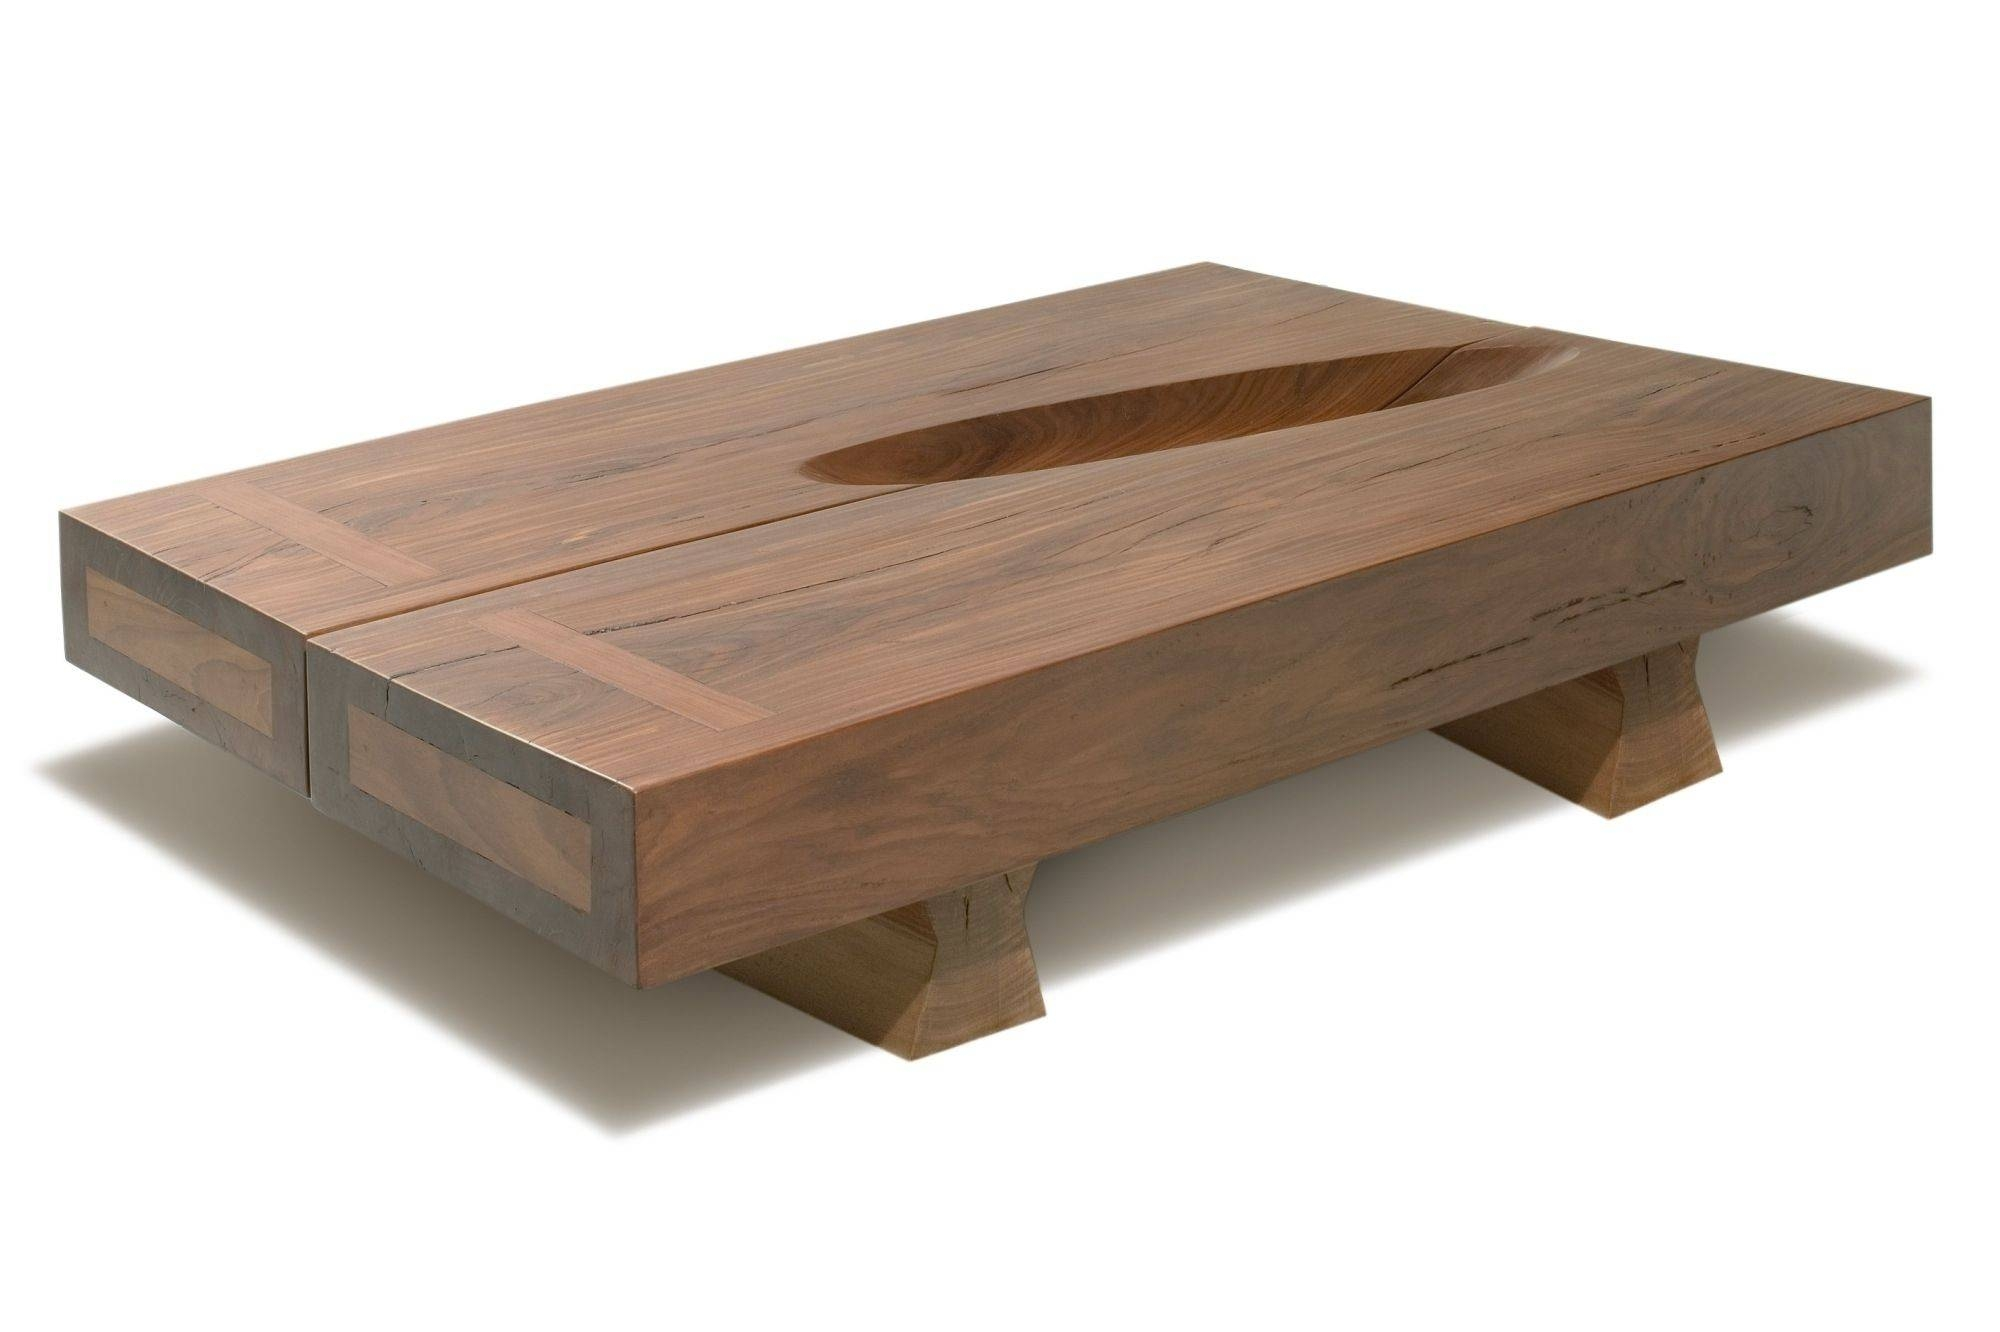 Low Chunky Wooden Coffee Table - Coffee Addicts intended for Low Wooden Coffee Tables (Image 6 of 15)